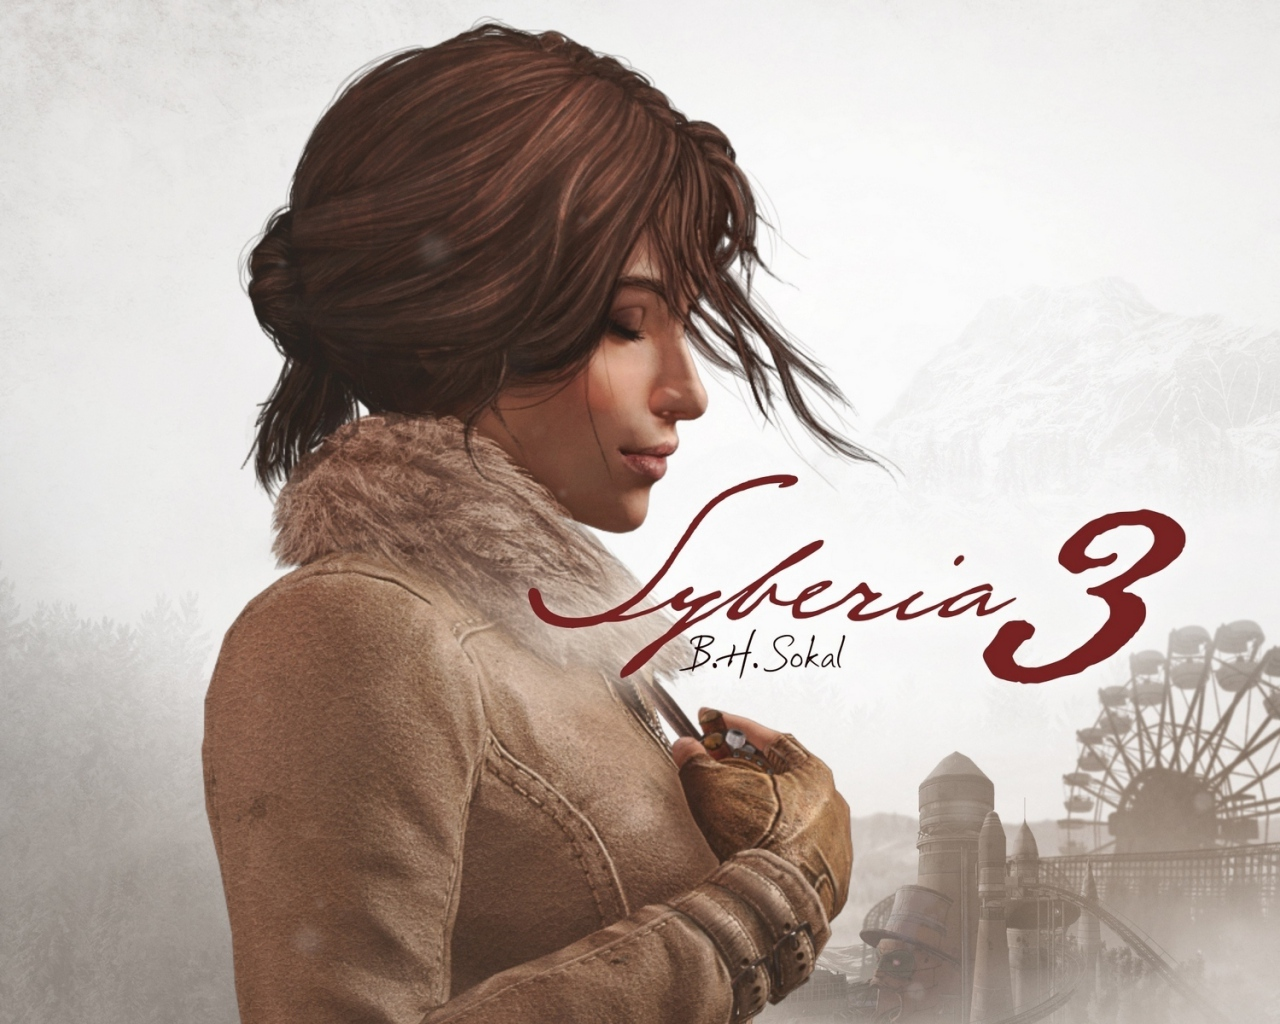 Stiahni si Hry na Windows Syberia 3 - Deluxe Edition (2017)(CZ)